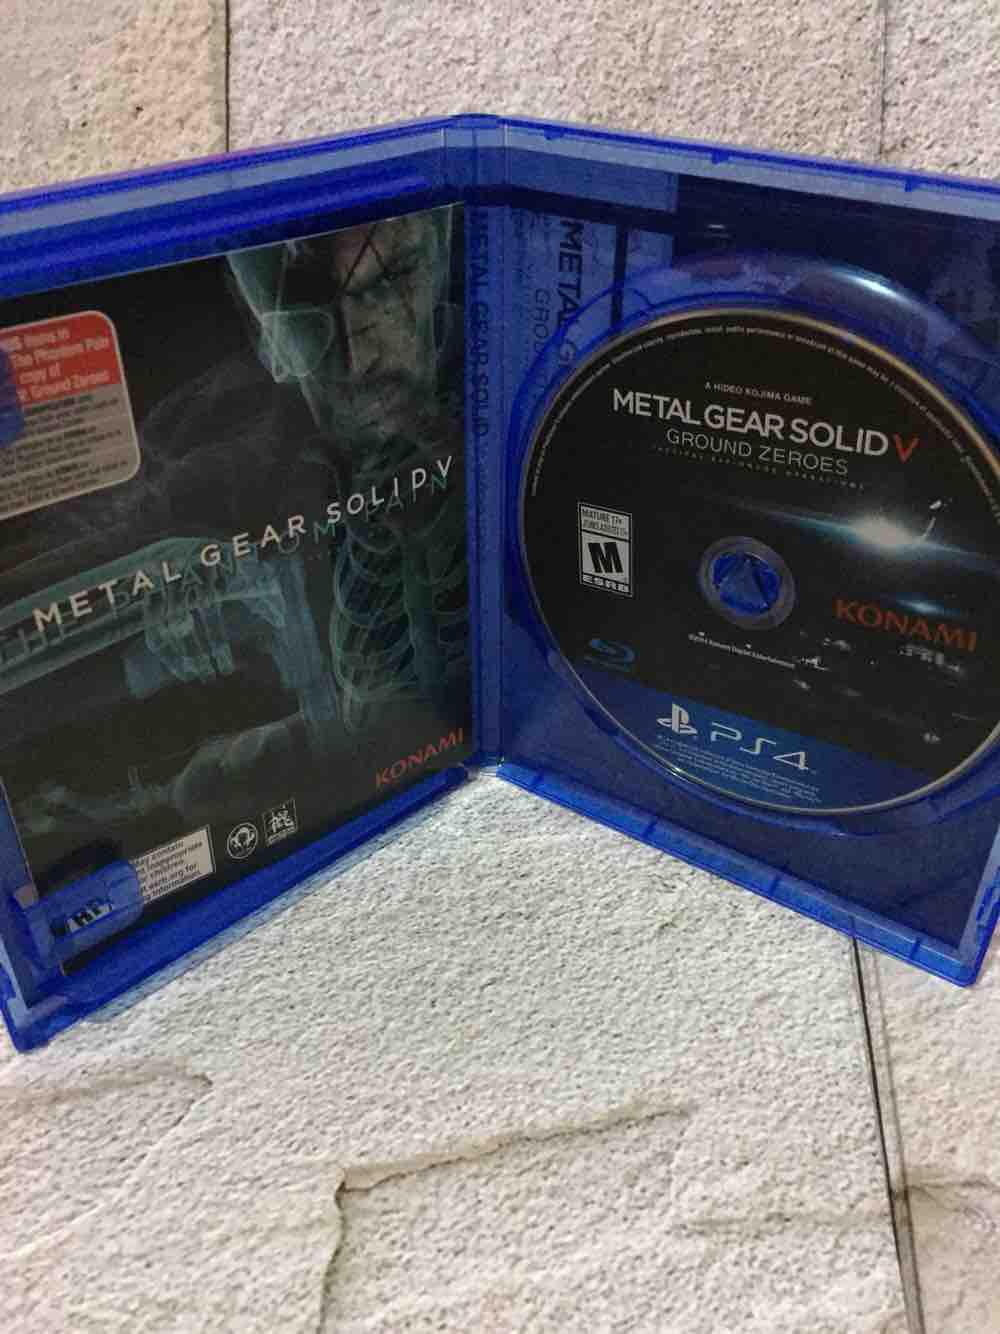 Fitur Metal Gear Solid V 5 Ground Zeroes Video Game Kaset Ps4 Konami Bd Battlefield 1 Reg 3 Detail Gambar Murah Terbaru